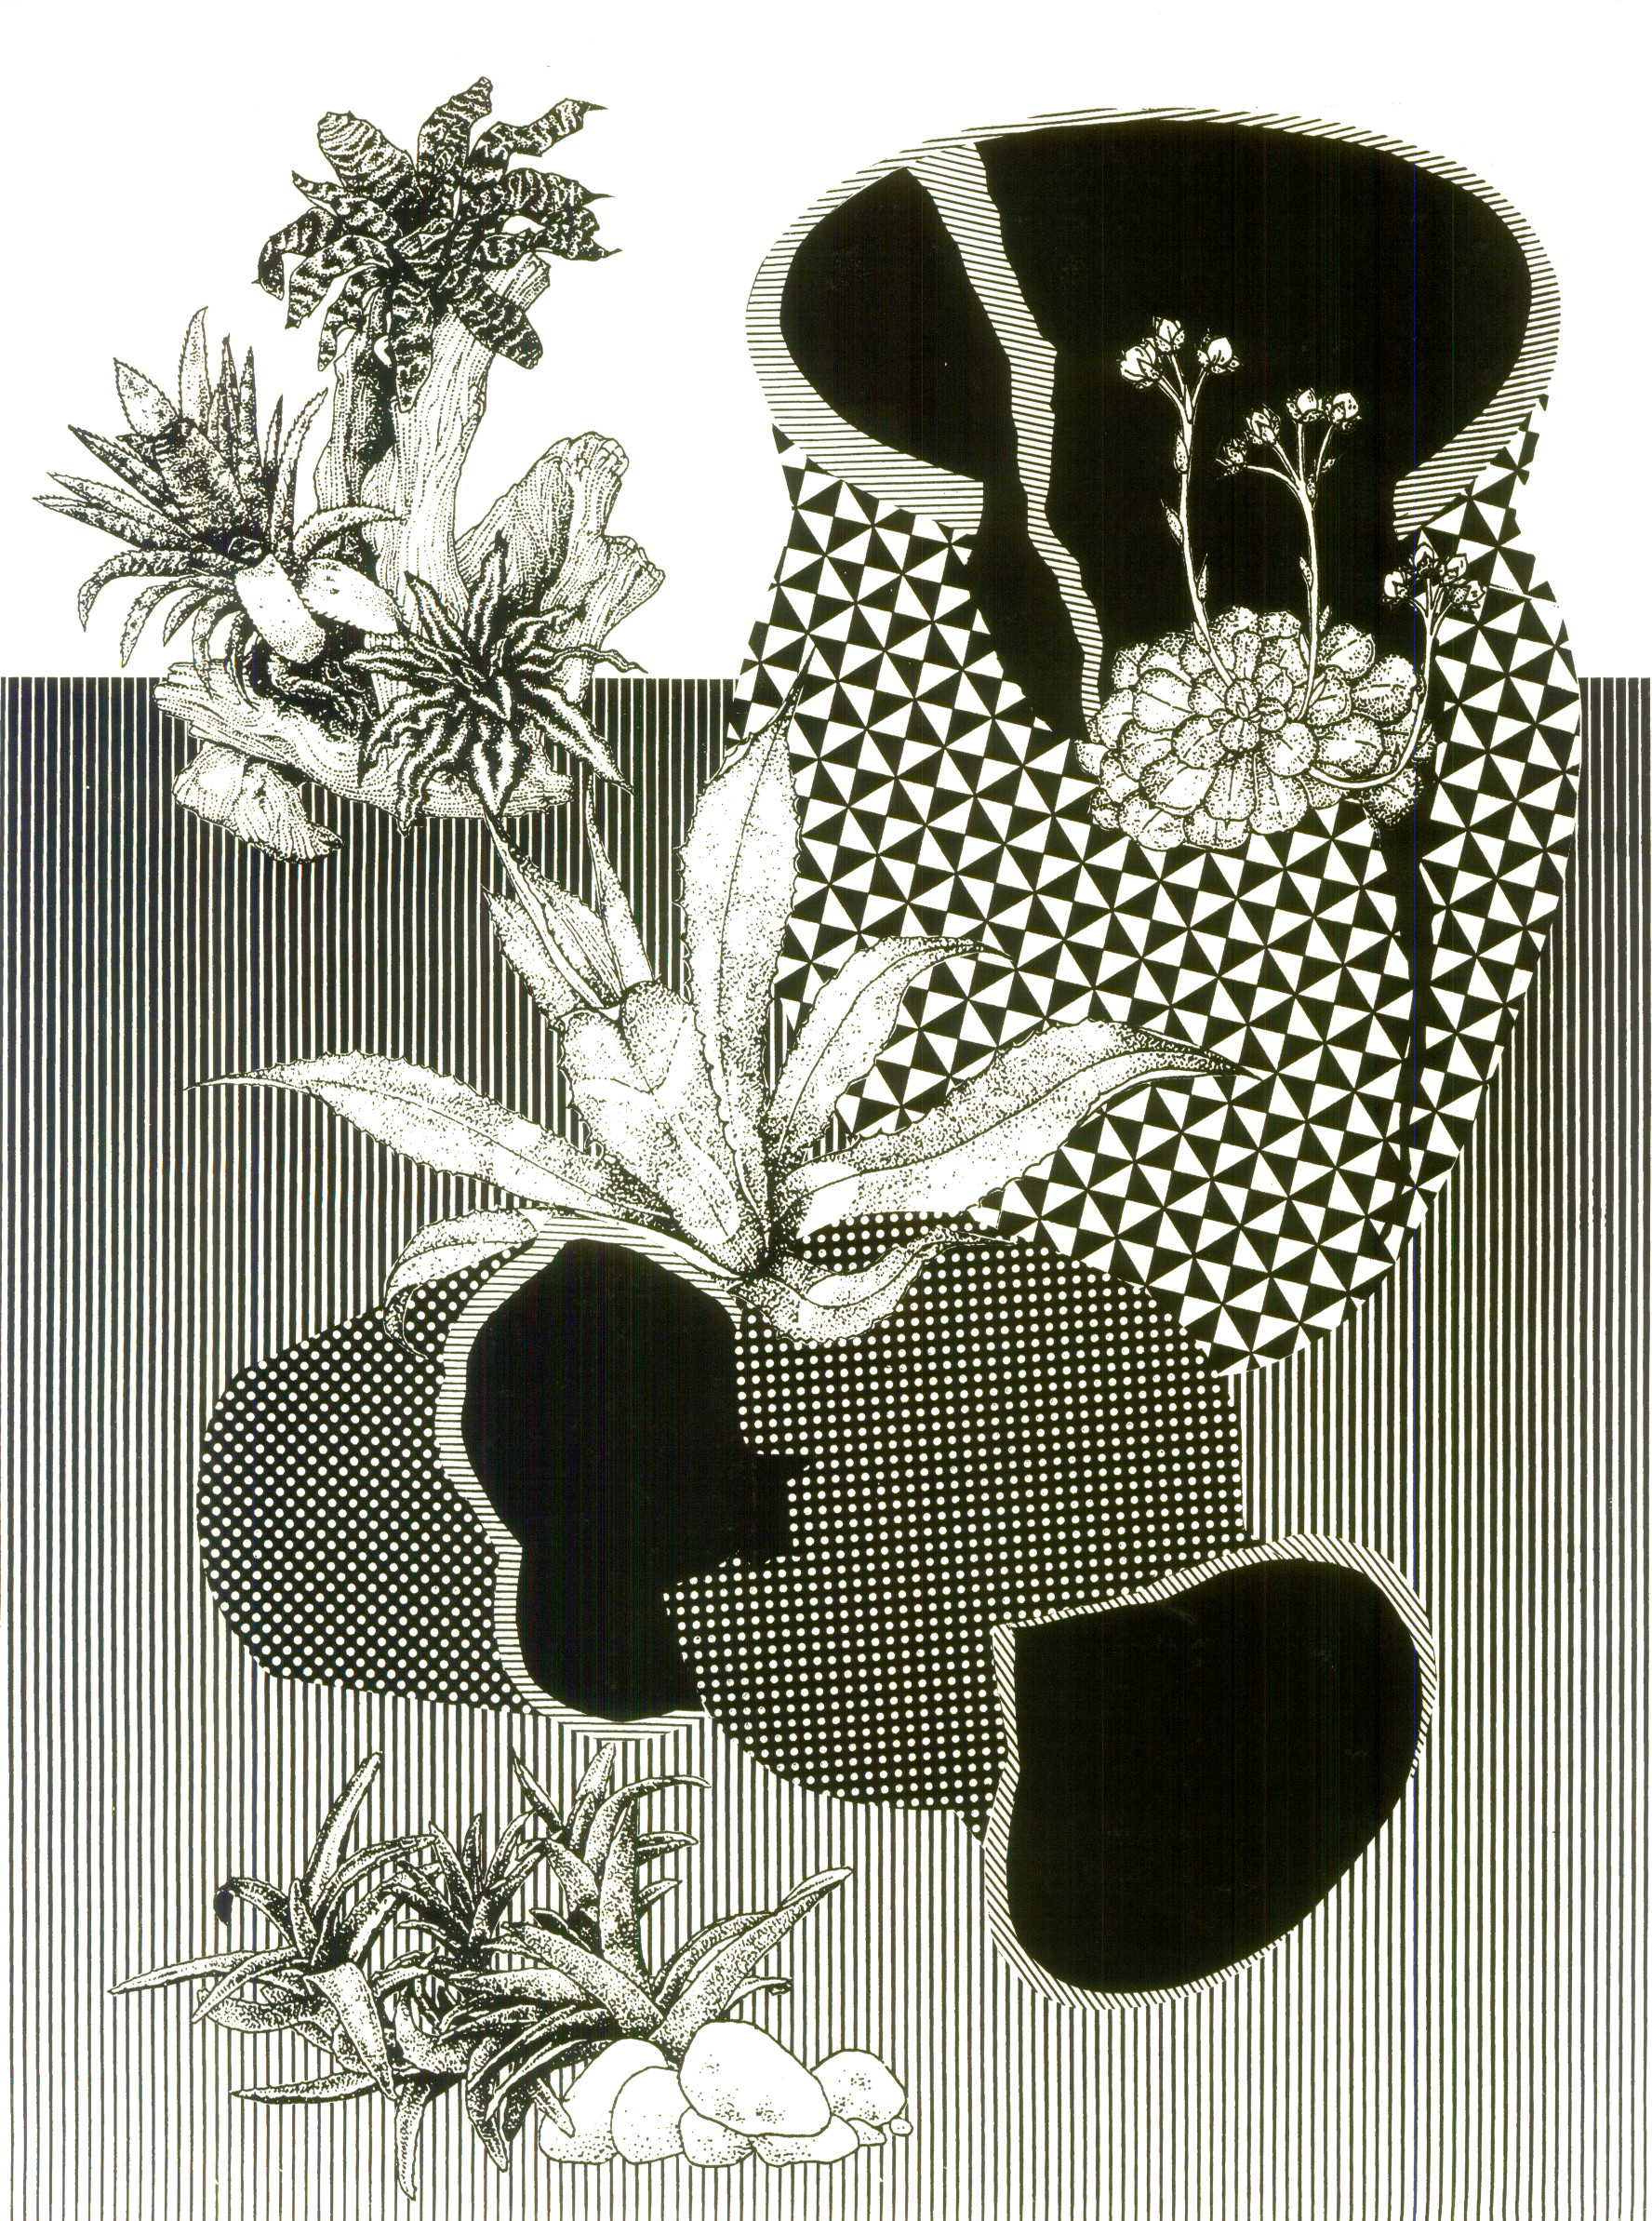 "Some day plants will cover everything  Screenprint  18"" x 24""  2014"